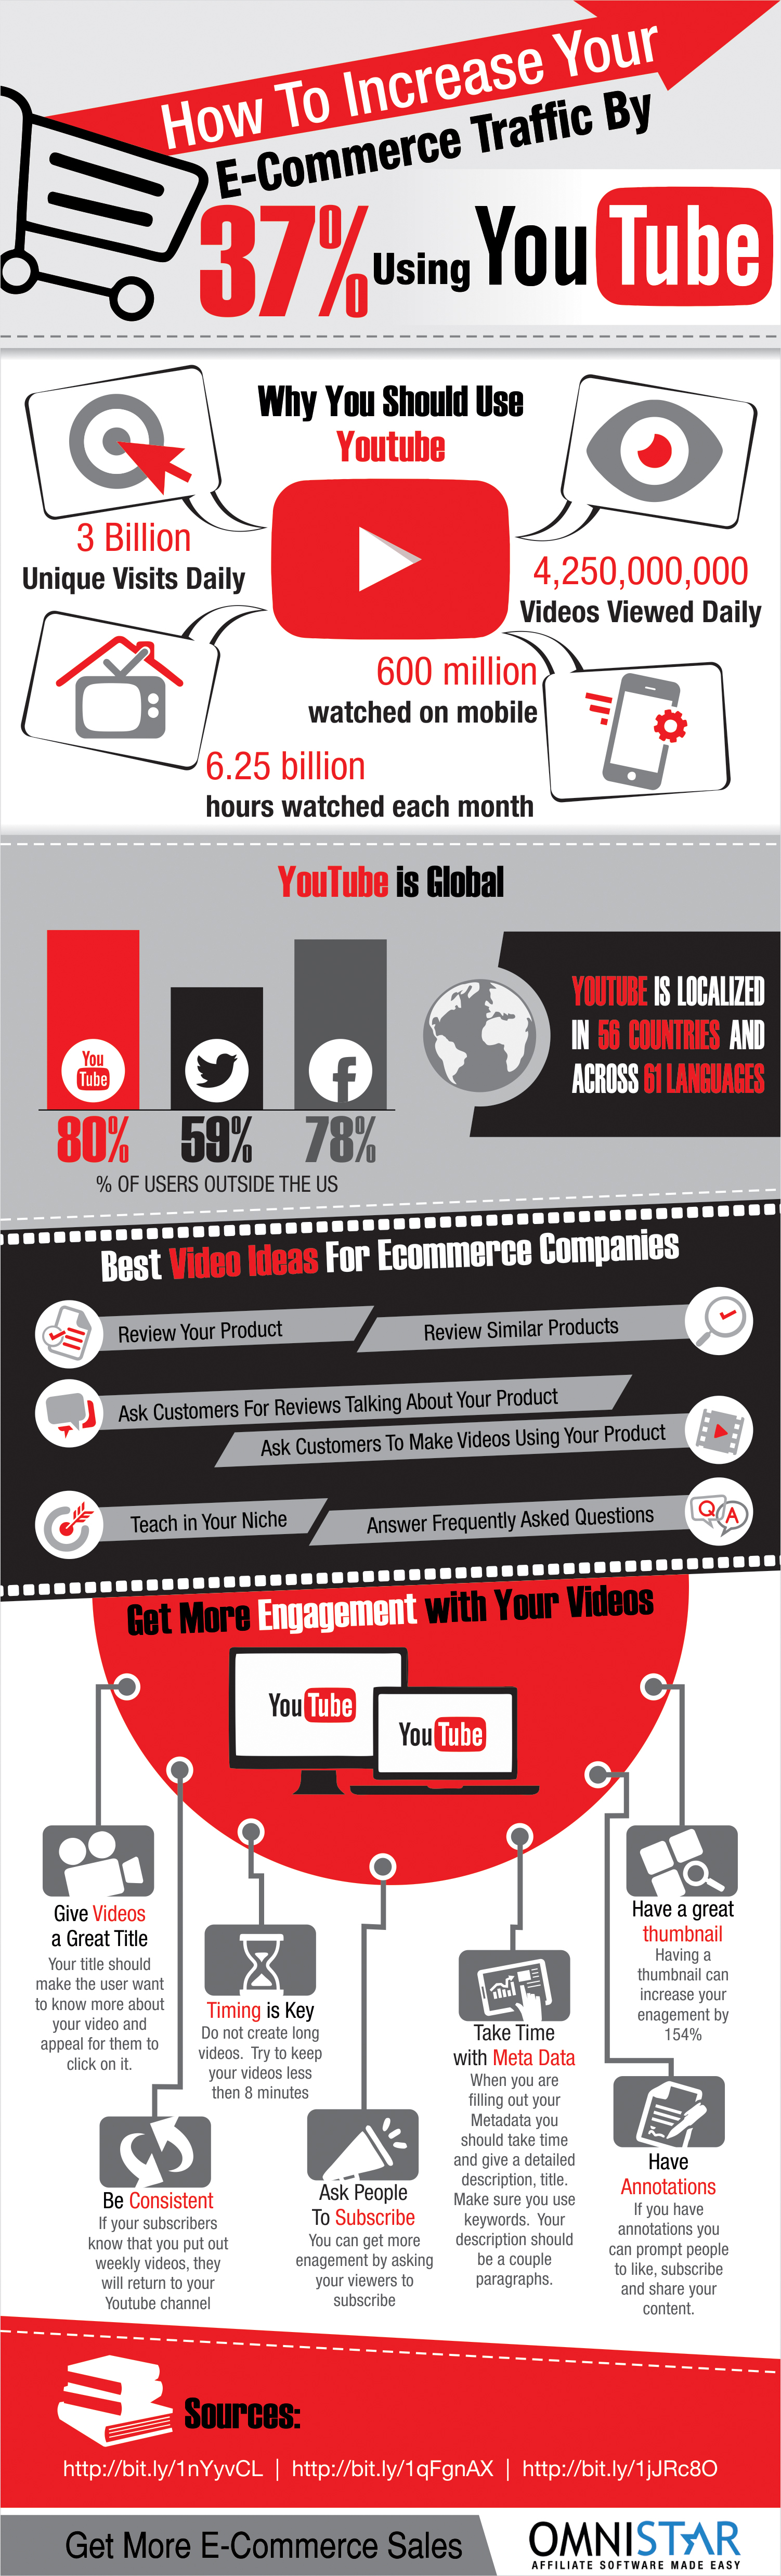 Infographic: How to Increase Your eCommerce Traffic by 37% Using YouTube